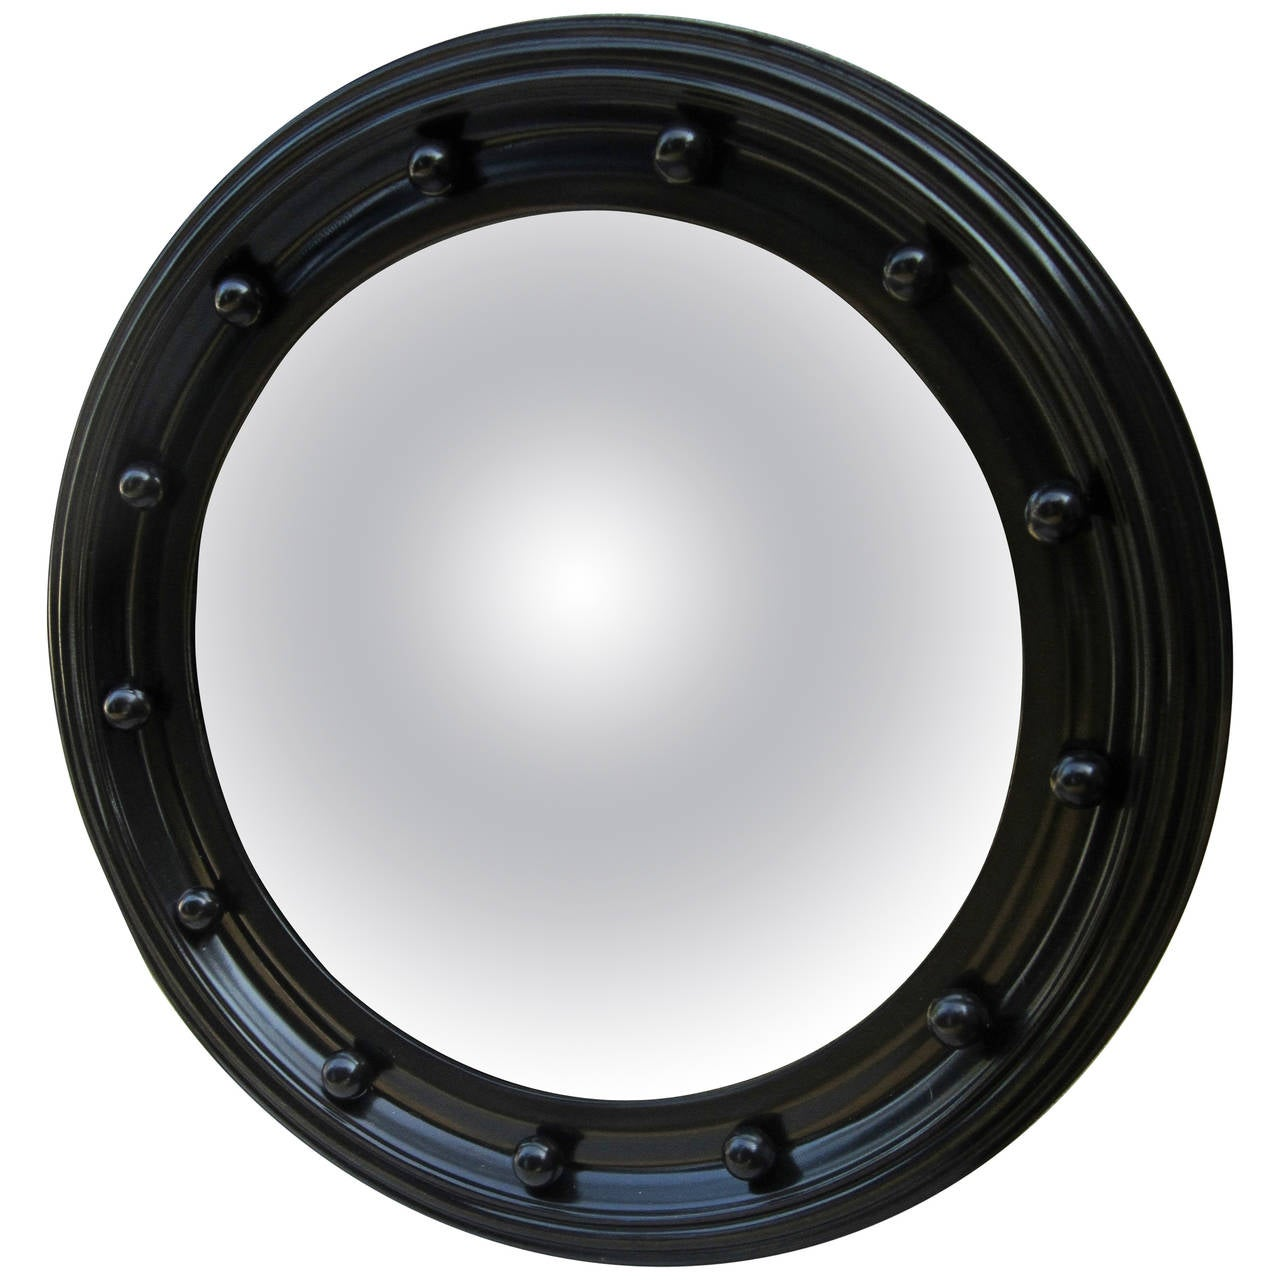 Black framed convex mirror for sale at 1stdibs for Convex mirror